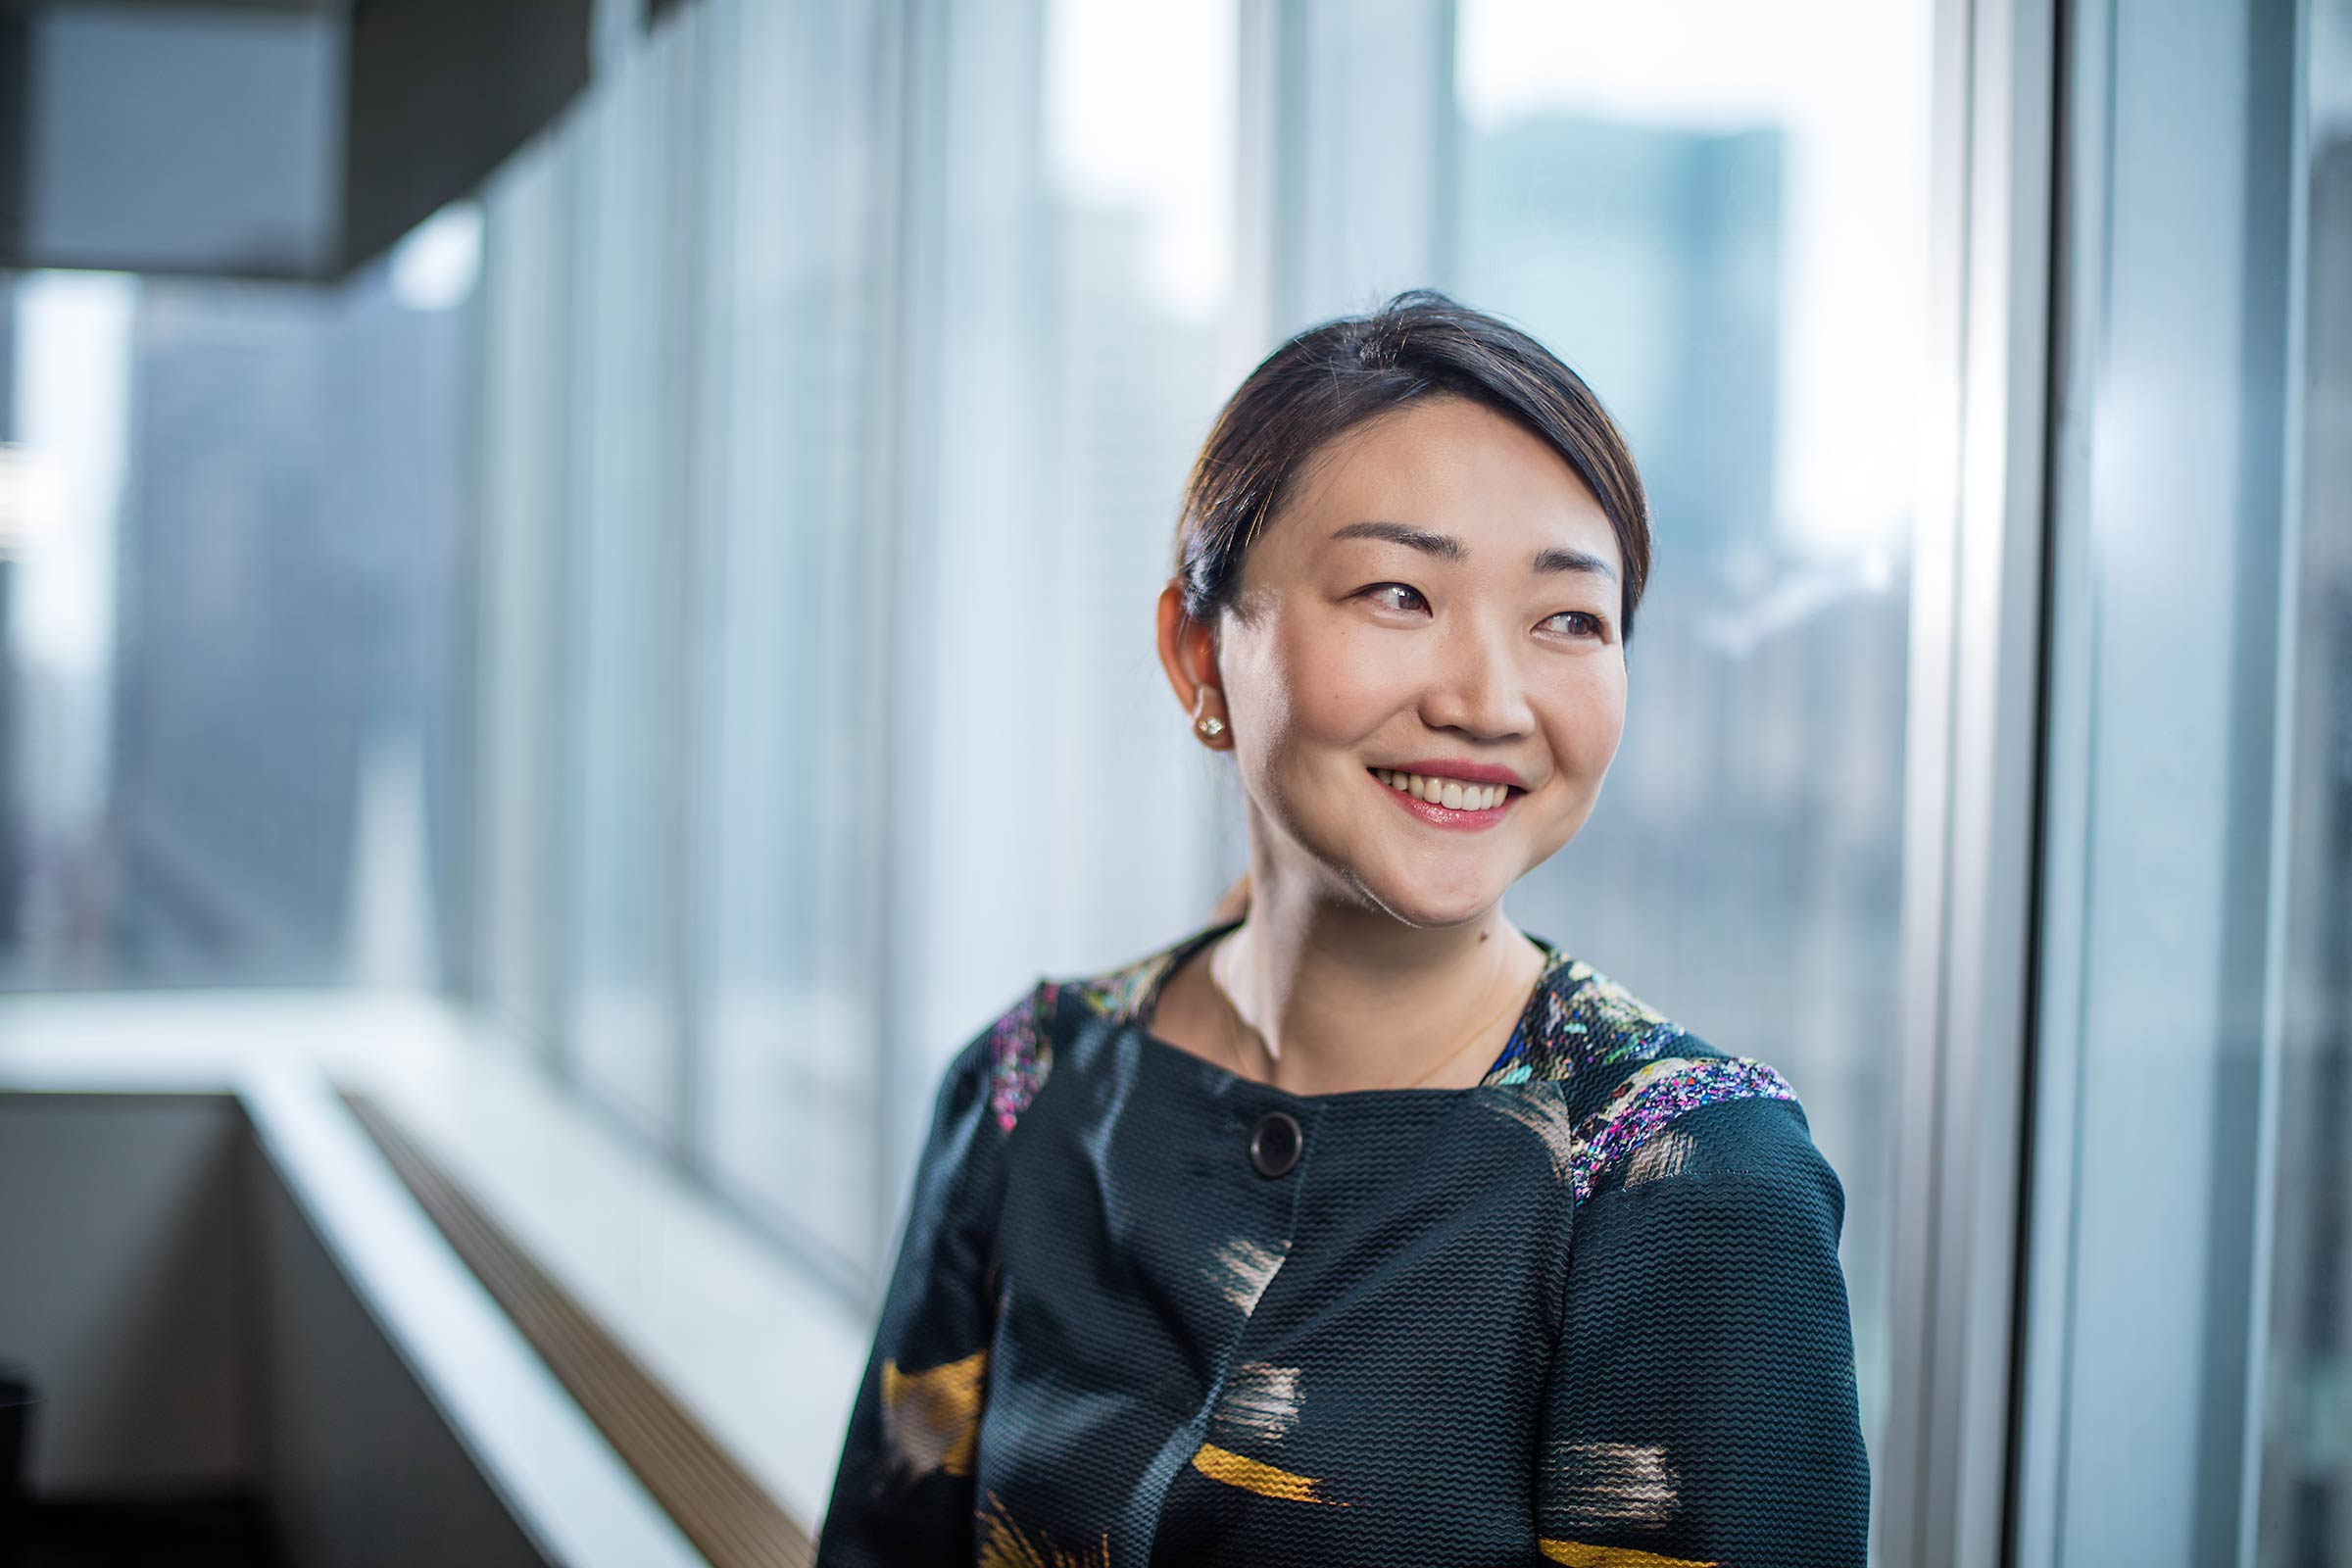 A female Asian executive smiles out the window of aNew York City office